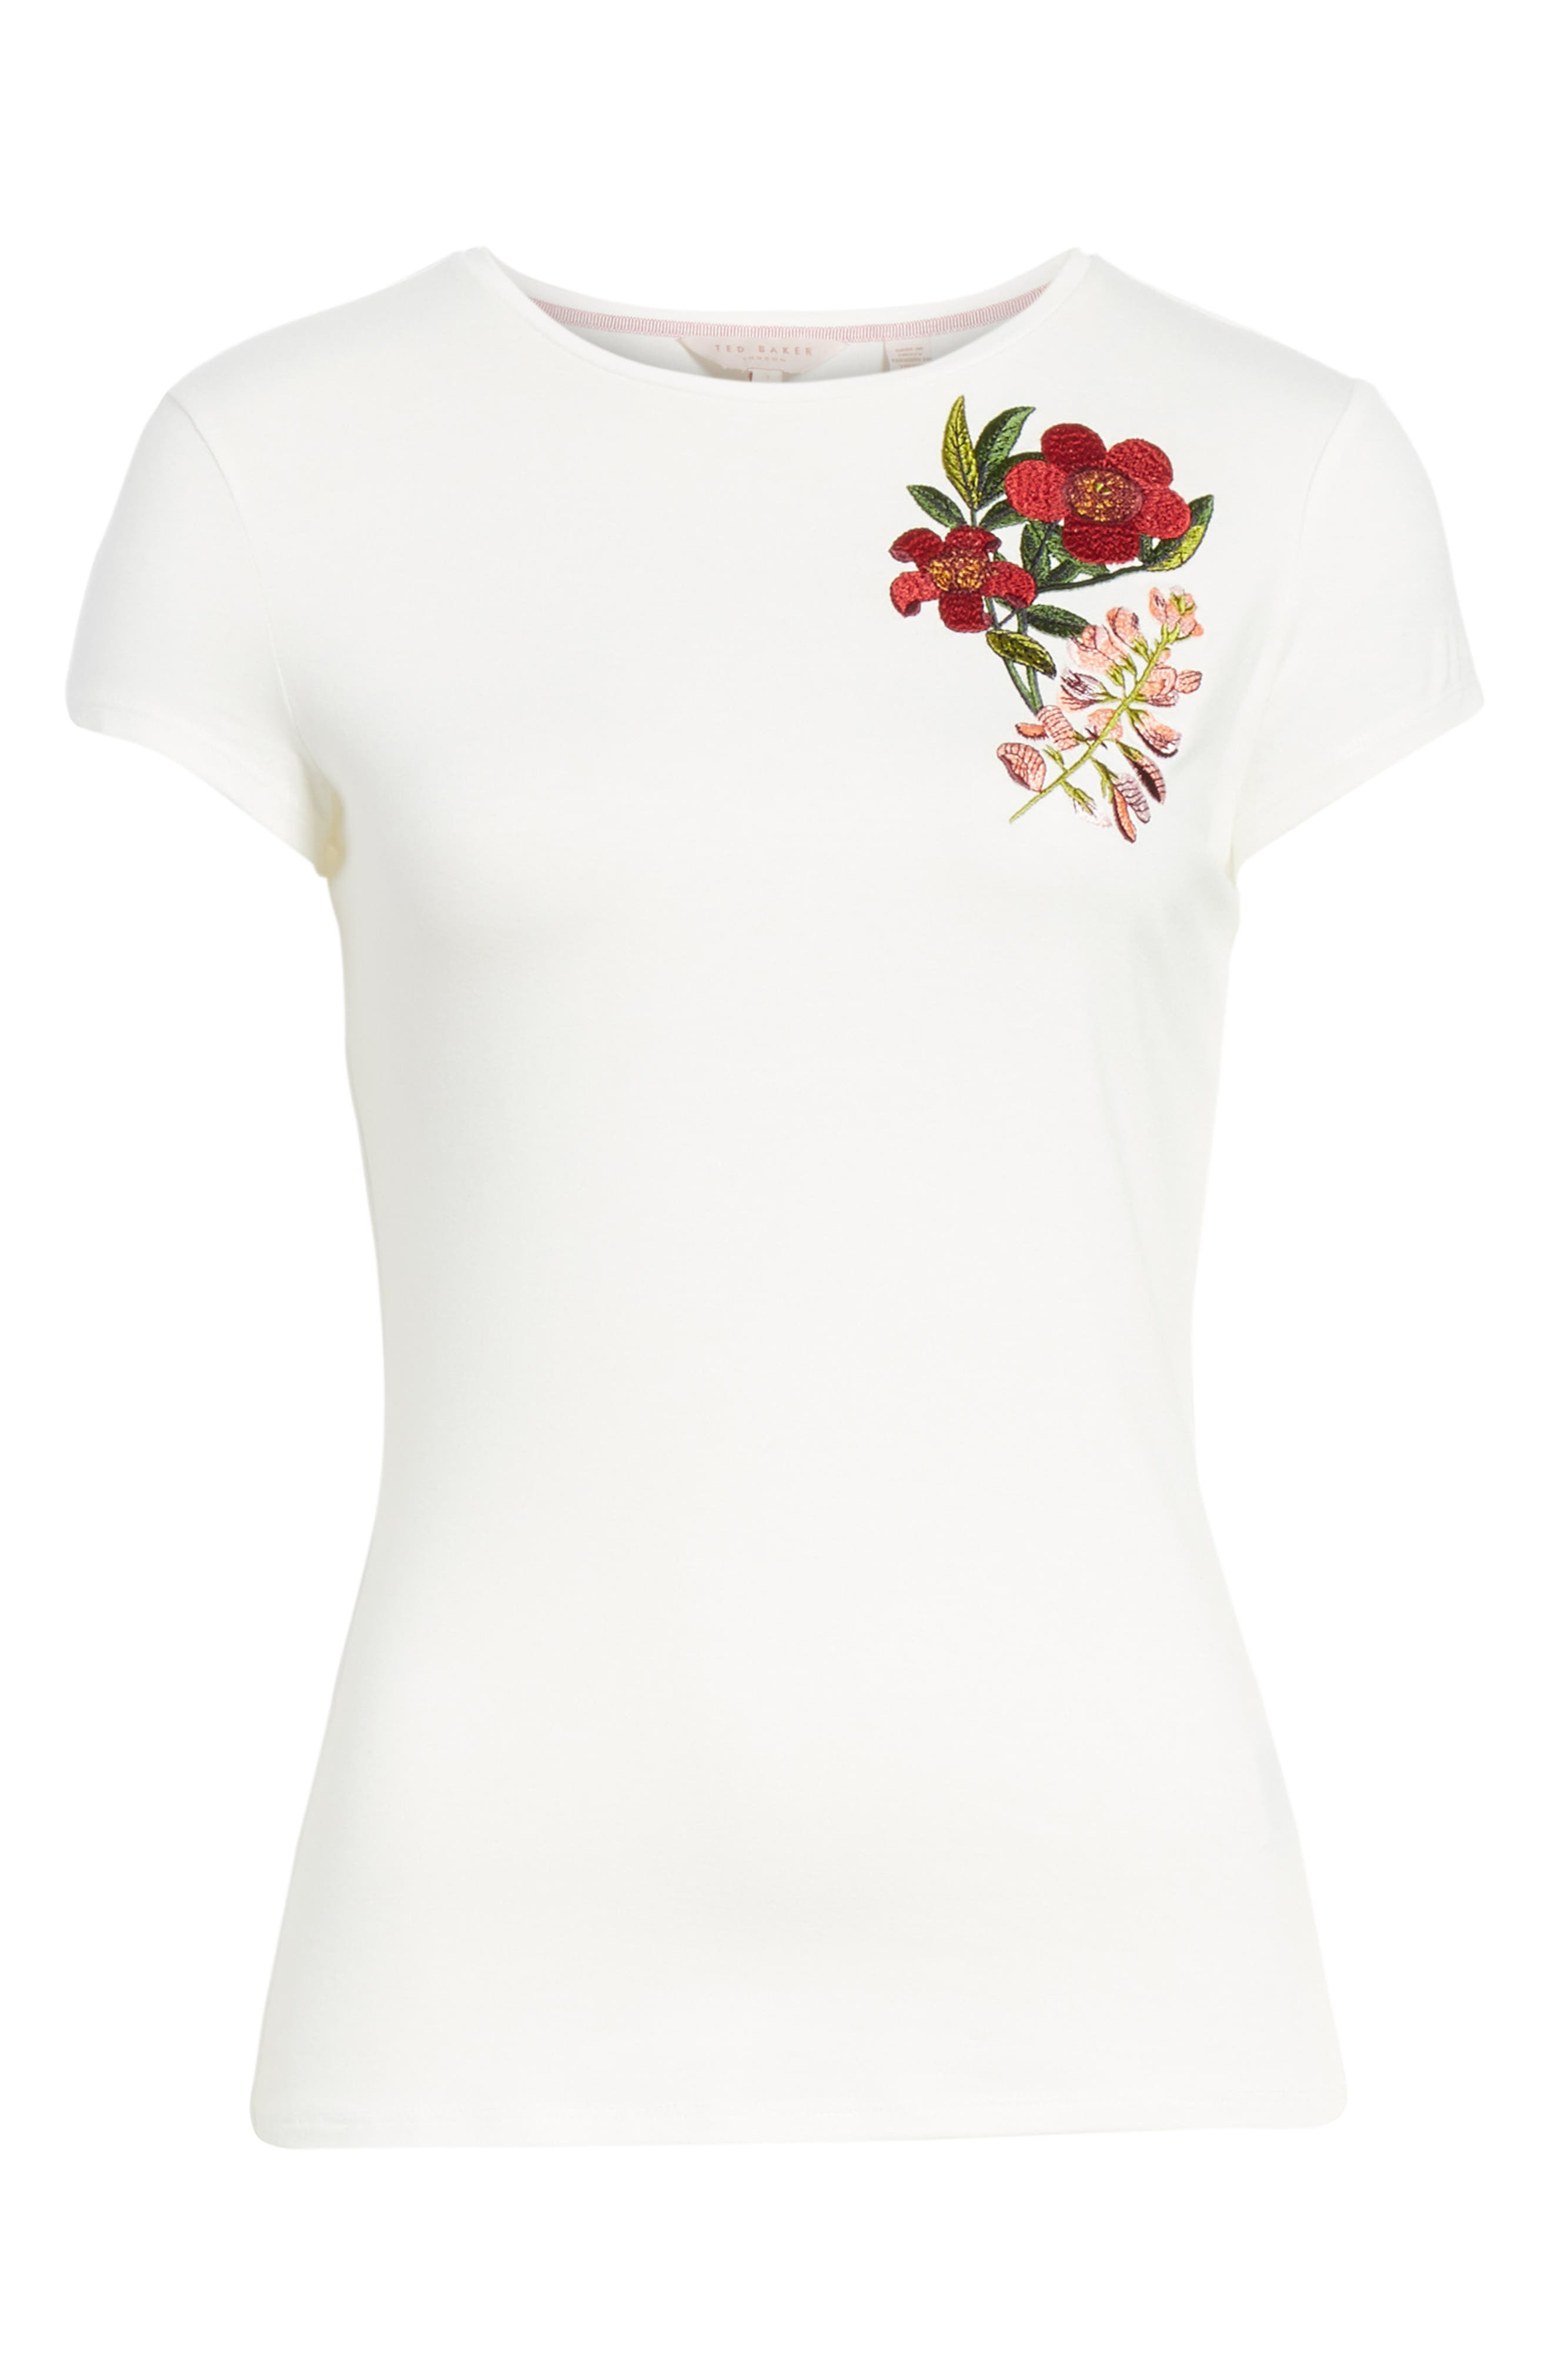 Laylar Kirstenbosch Embroidered Tee,                             Alternate thumbnail 6, color,                             905